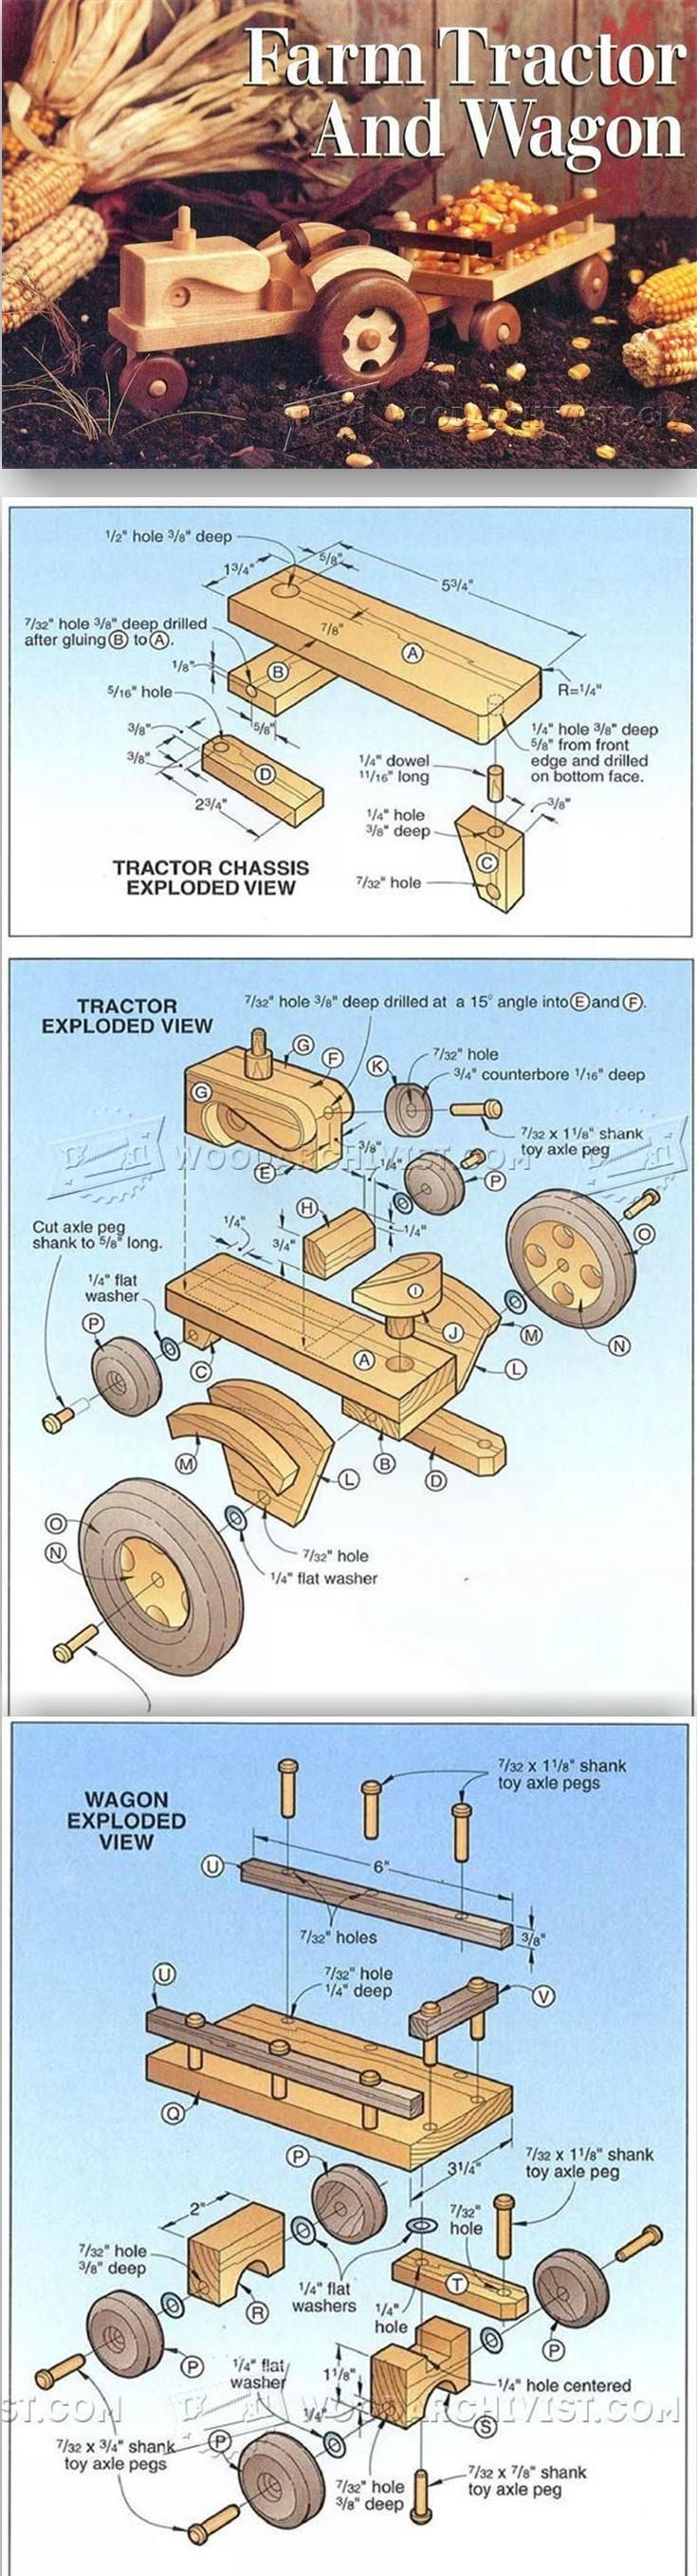 Wooden Tractor Plans - Wooden Toy Plans and Projects | WoodArchivist.com